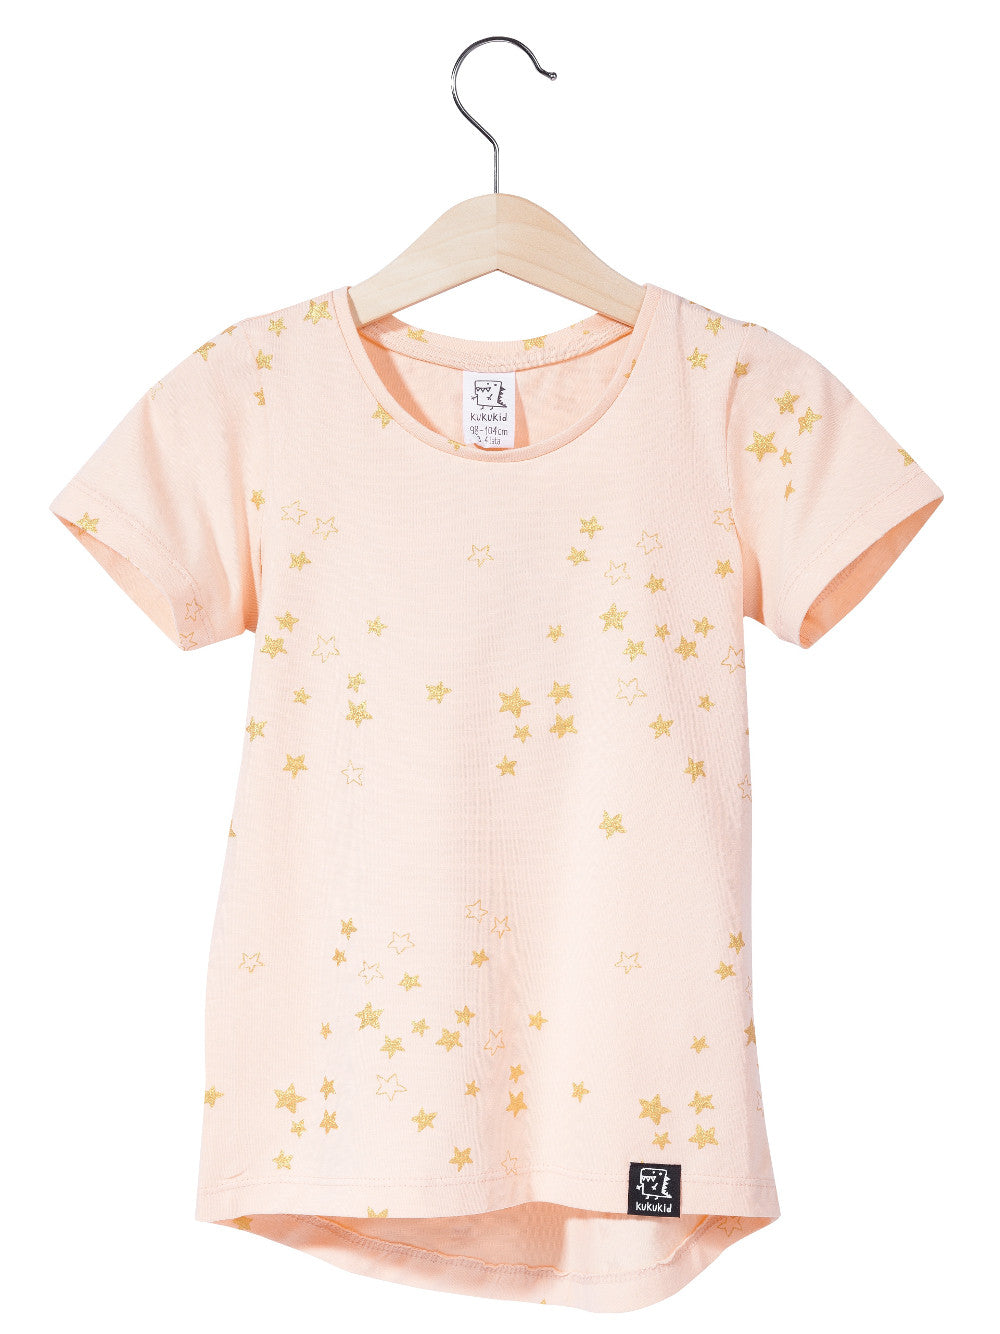 Kukukid Pink Tee with Golden Stars